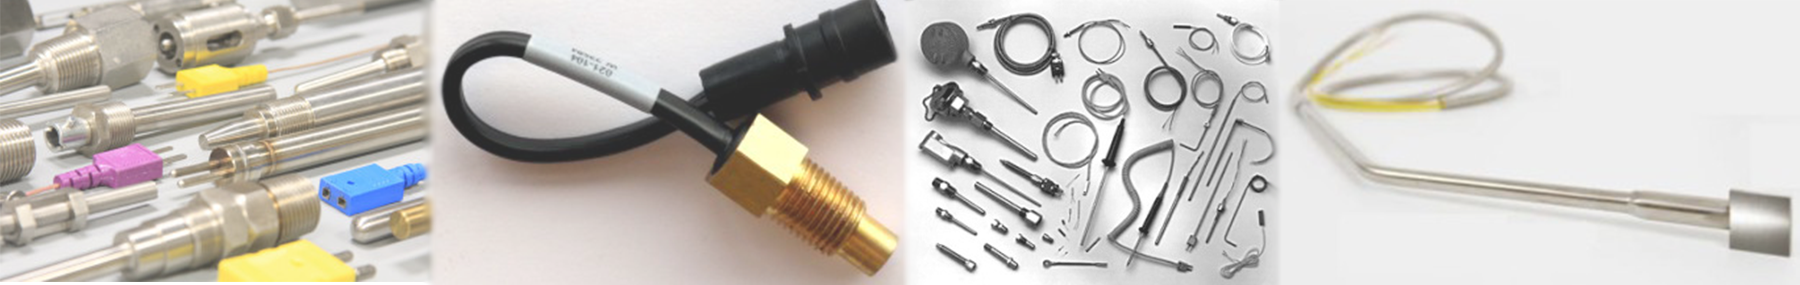 Thermocouple Manufacturers banner